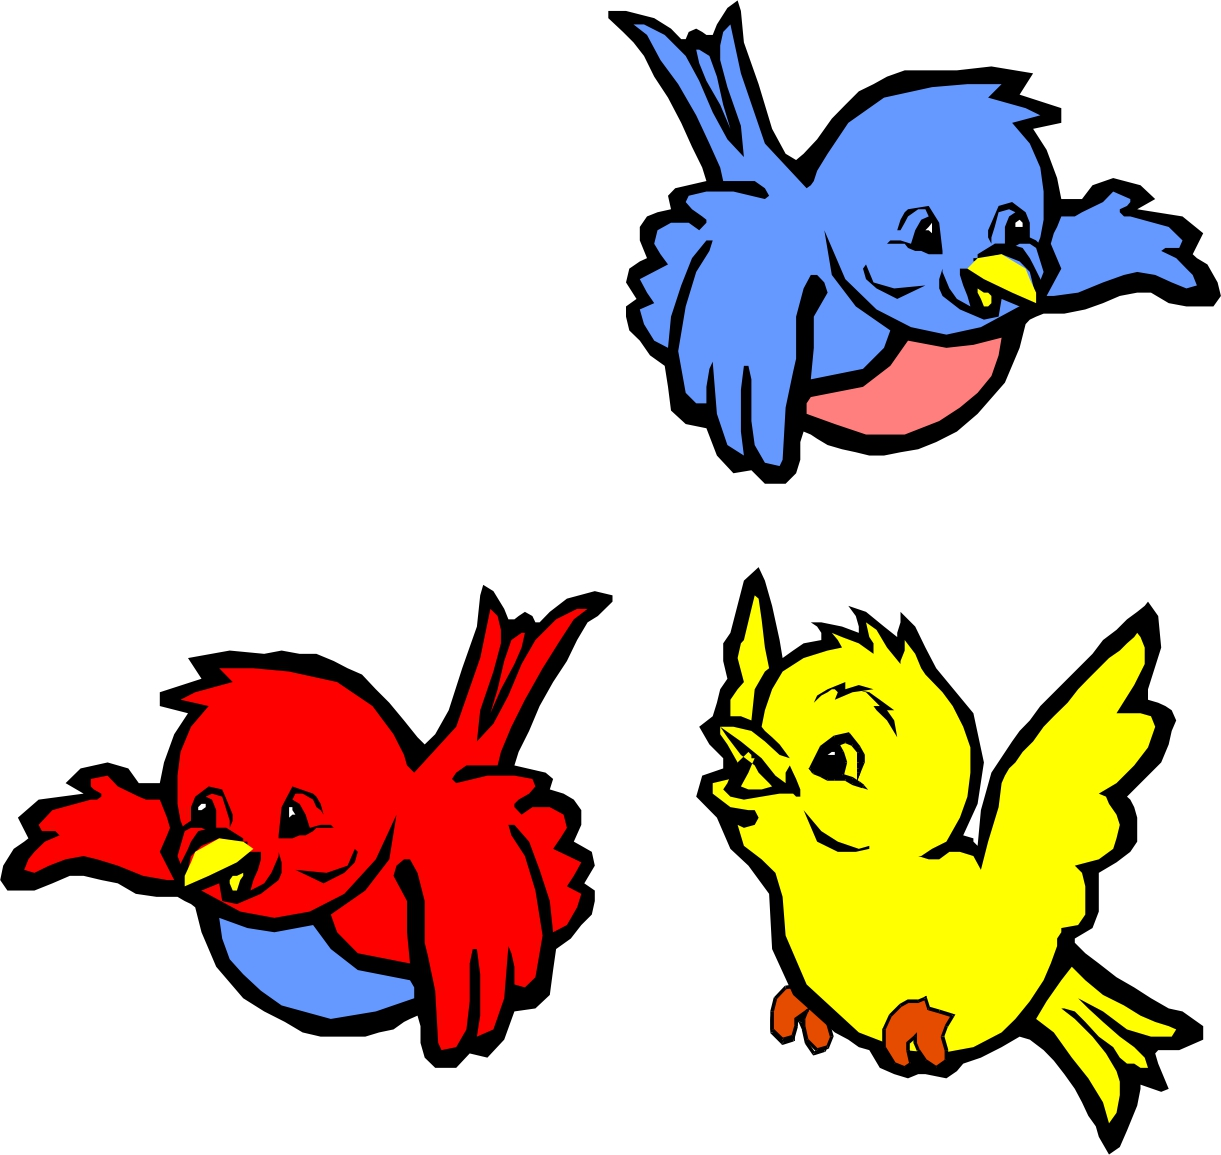 Free Animated Bird Cliparts, Download Free Clip Art, Free Clip Art.